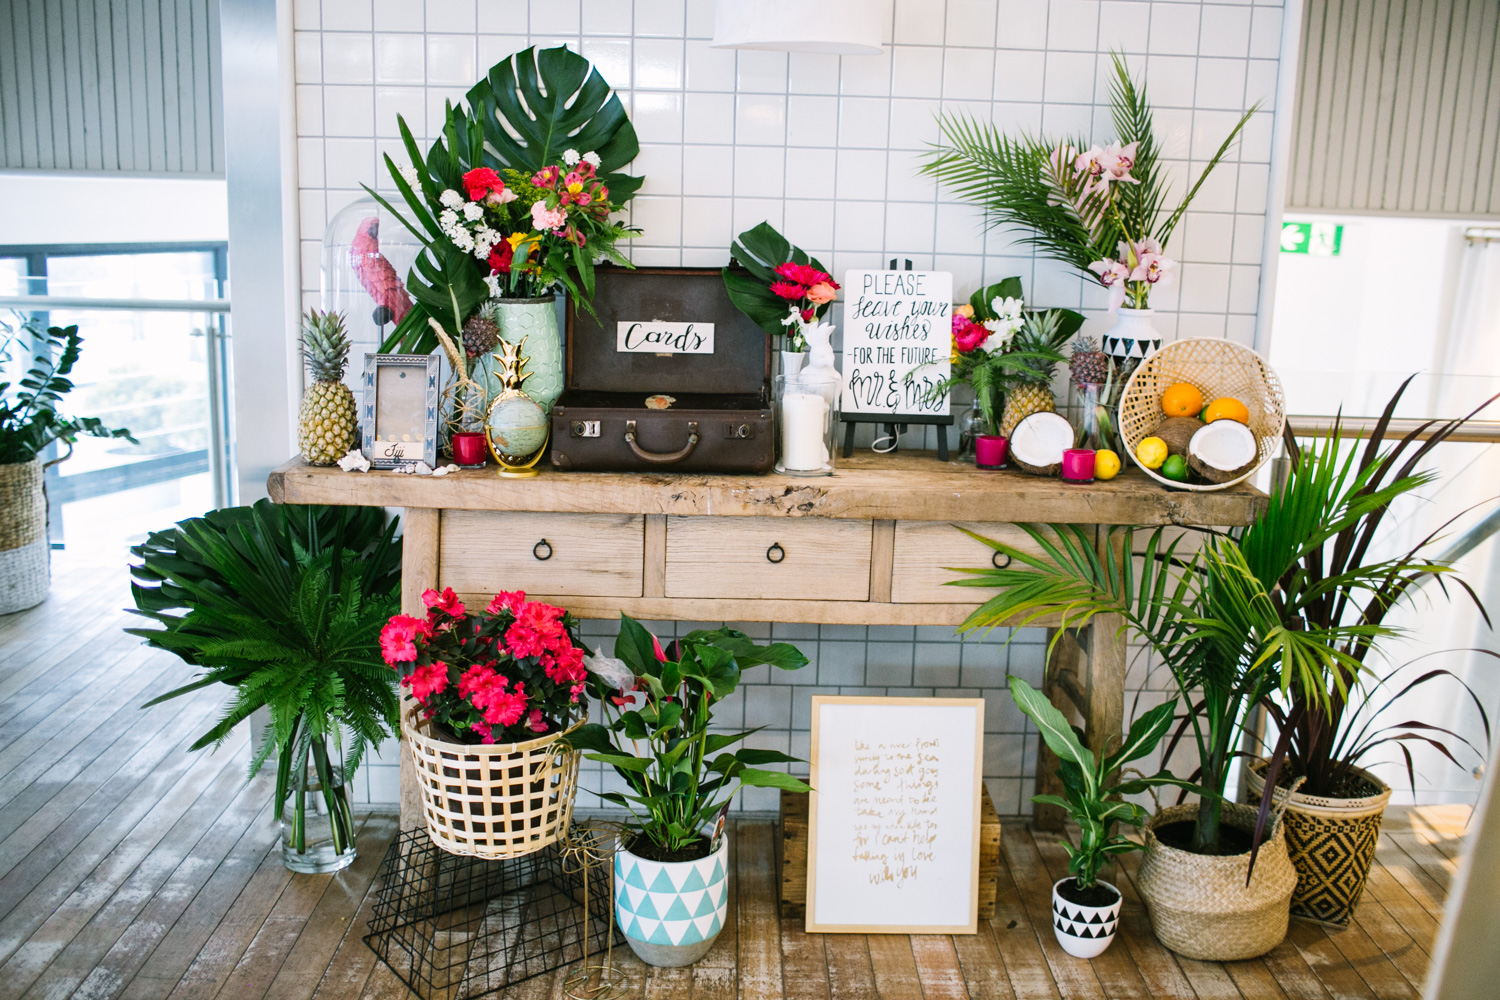 Kaleigh's Engagement Party {Event Styling}